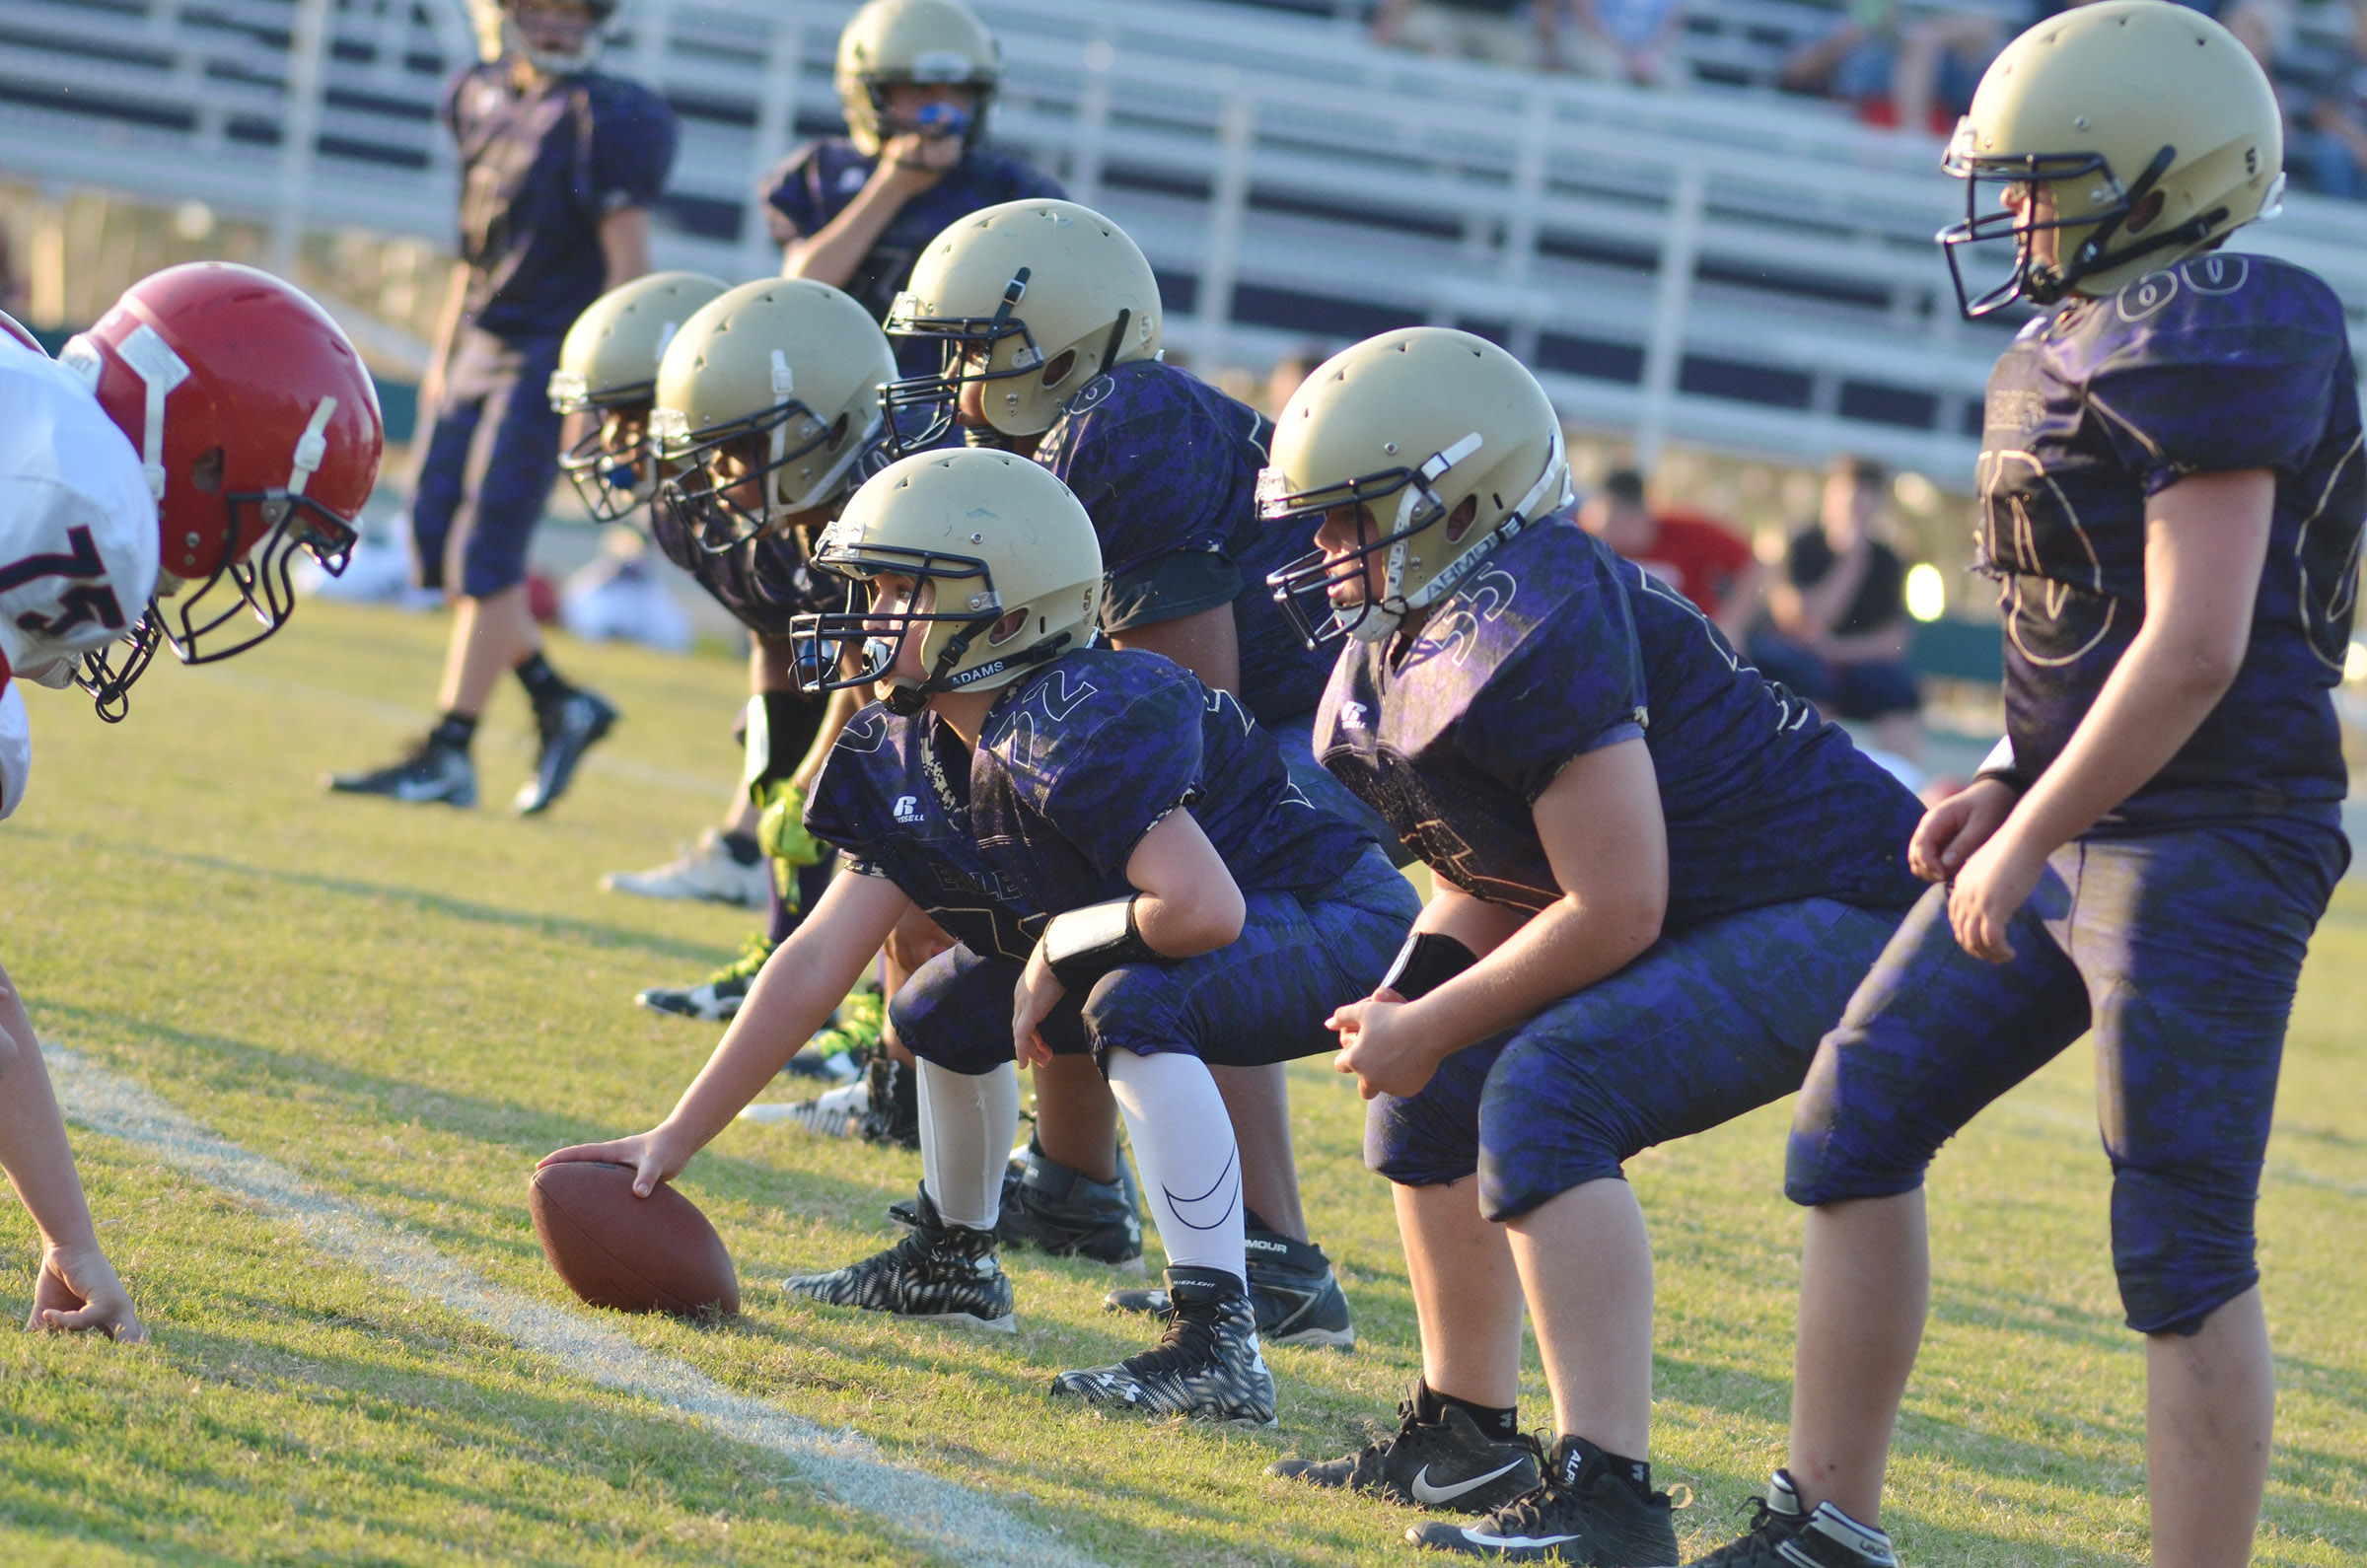 CMS offensive line players get ready for the snap.